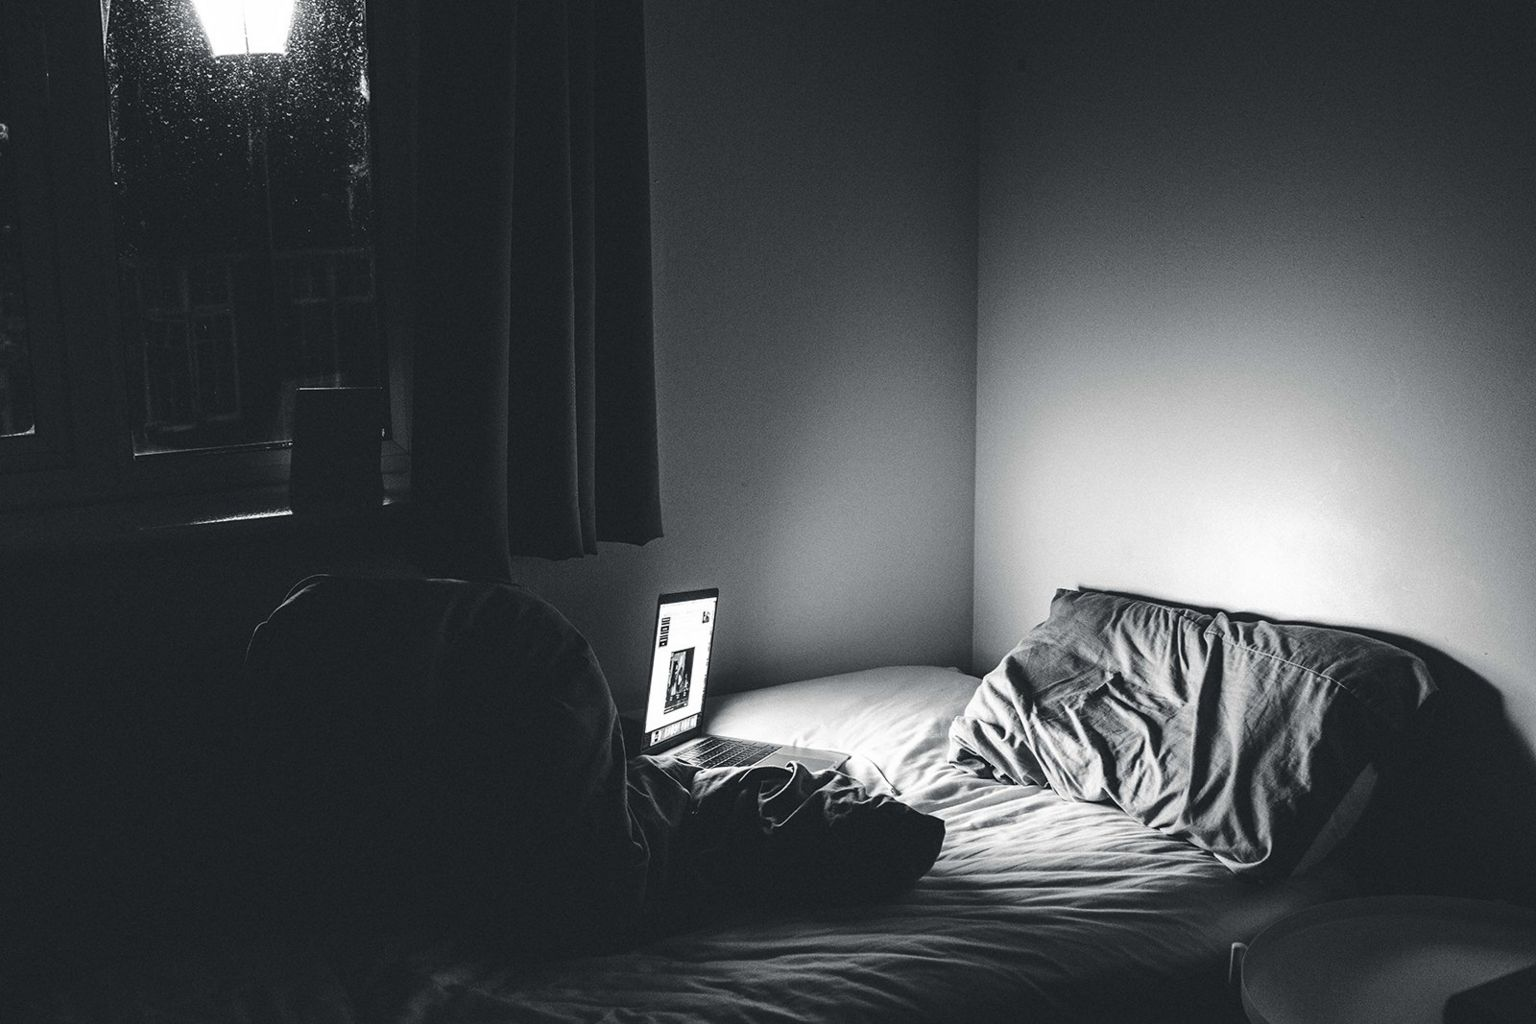 Bed with laptop